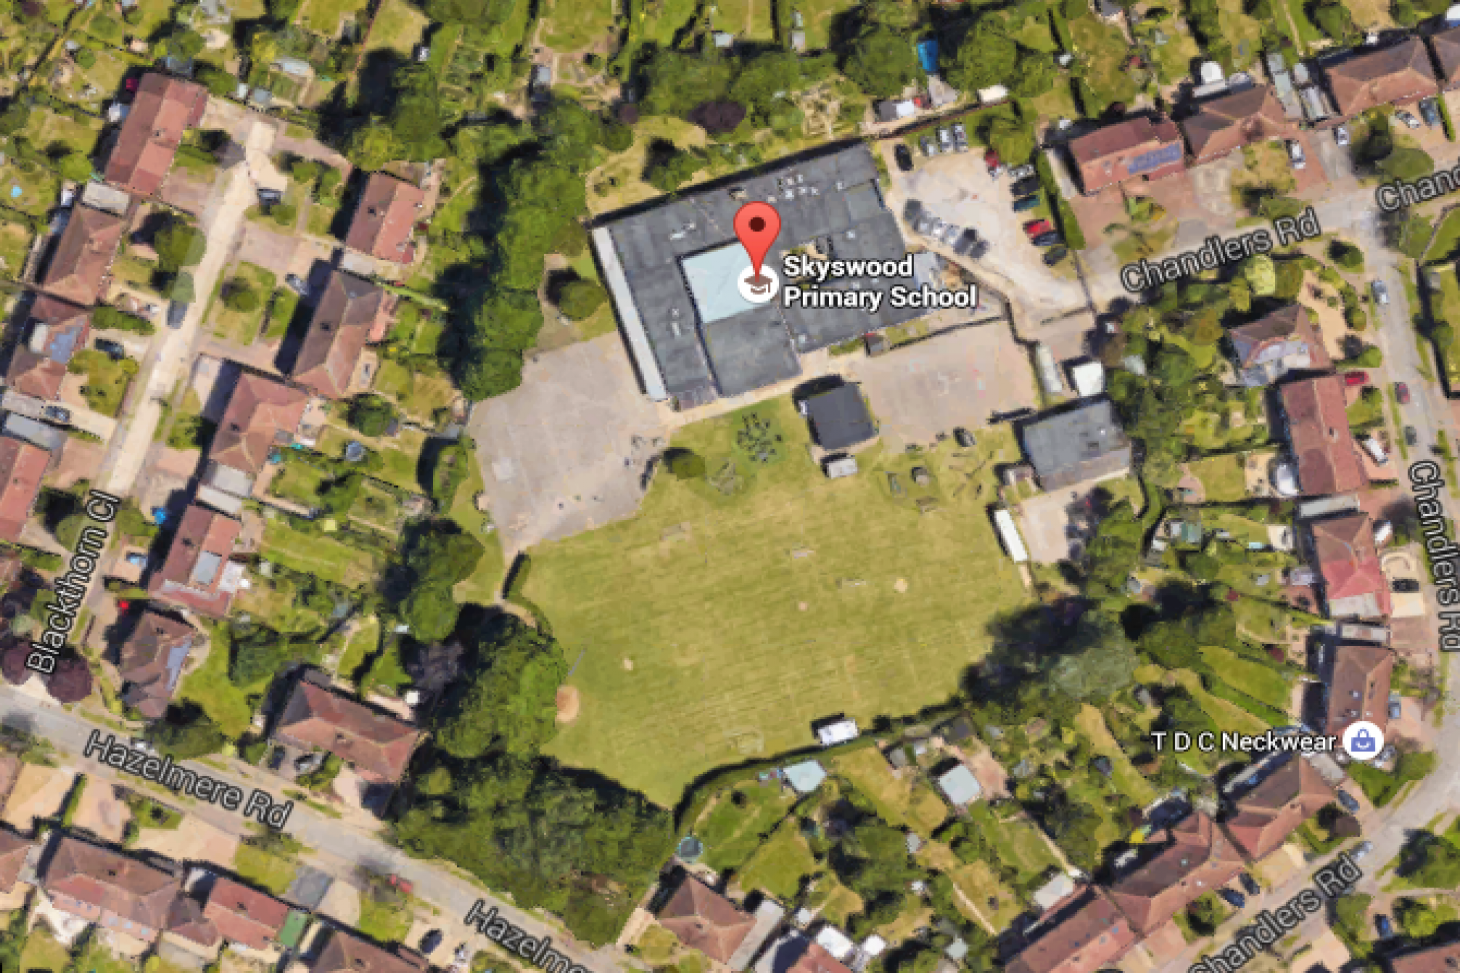 Skyswood Primary School 11 a side | Grass football pitch